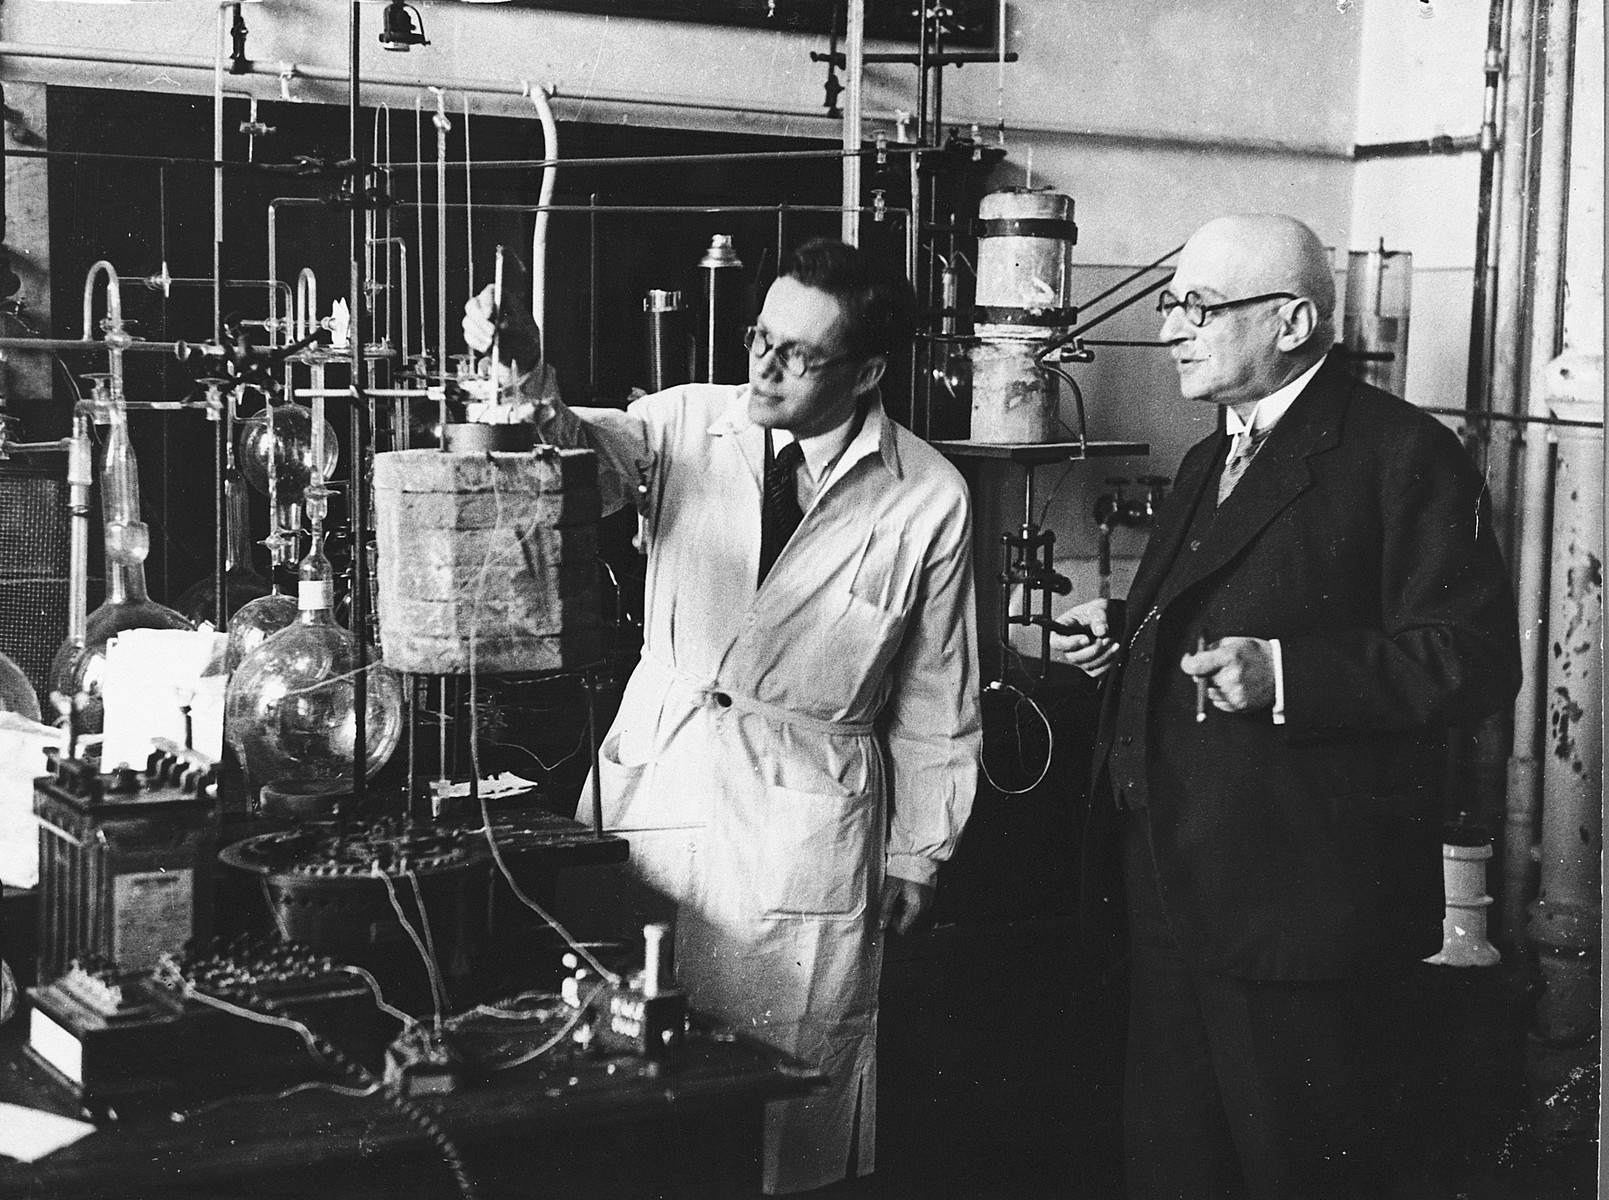 Ladislaus Farkas works in the laboratory of Prof. Fritz Haber in the Kaiser Wilhelm Institute for Physical Chemistry.